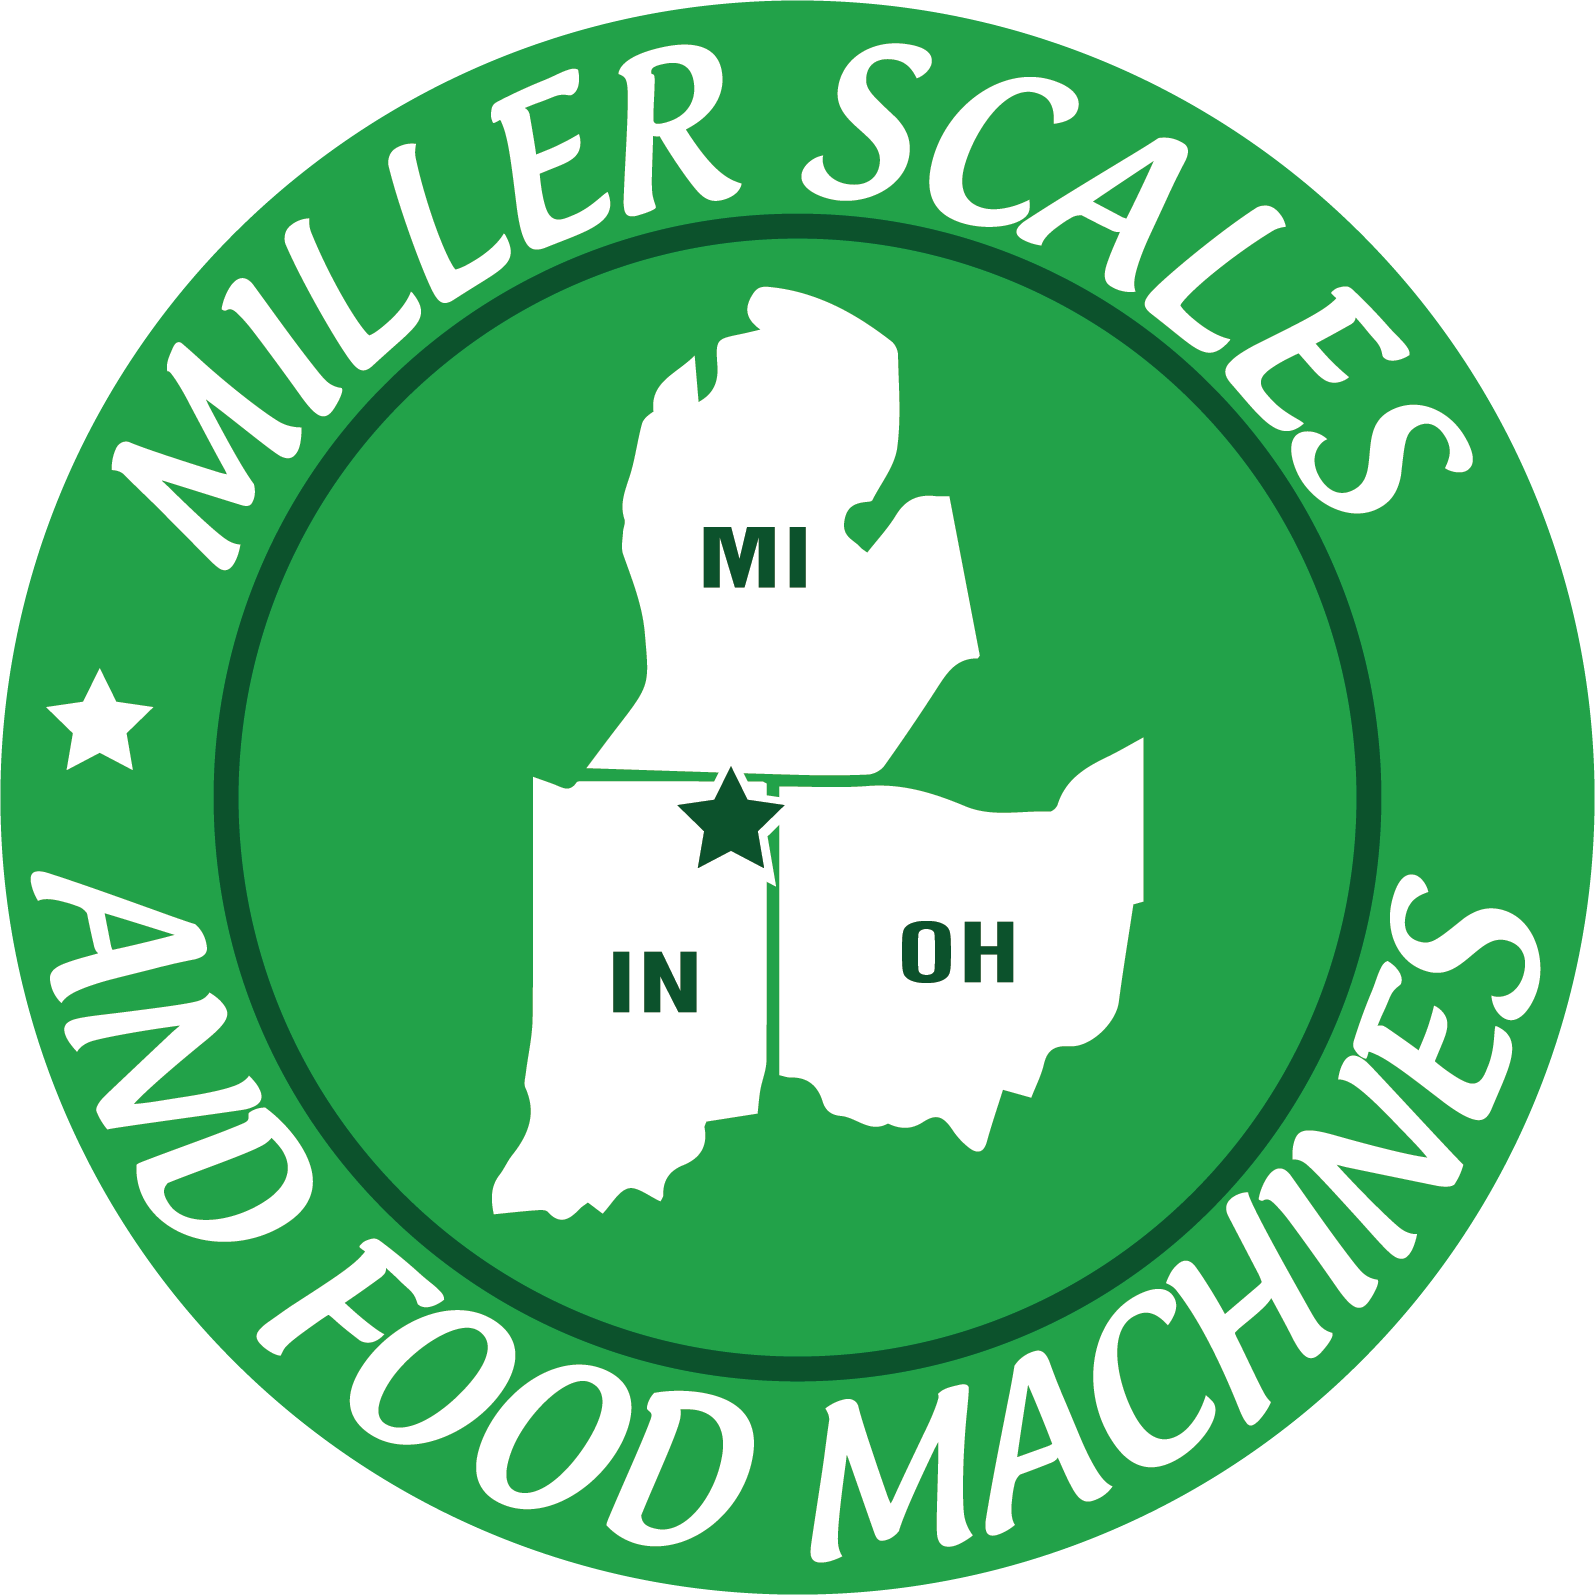 Miller Scales & Food Machines